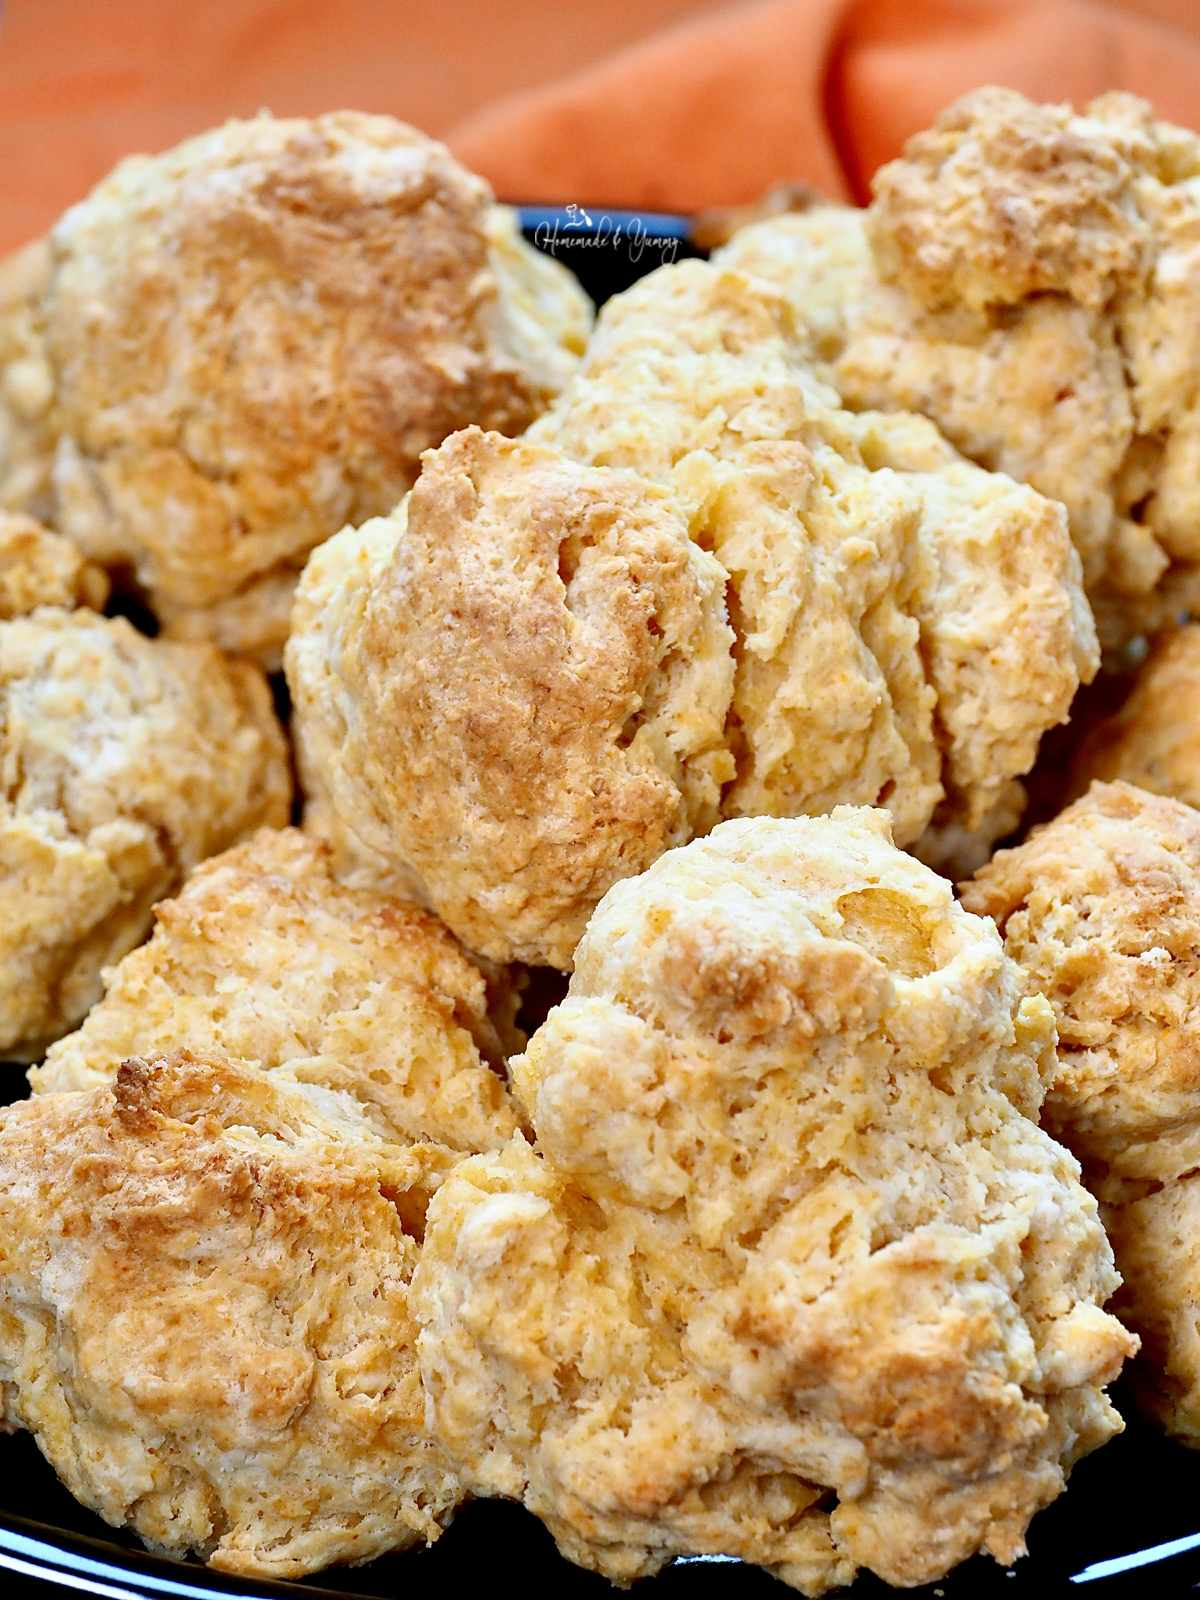 A pile of gramma's biscuits on a plate.